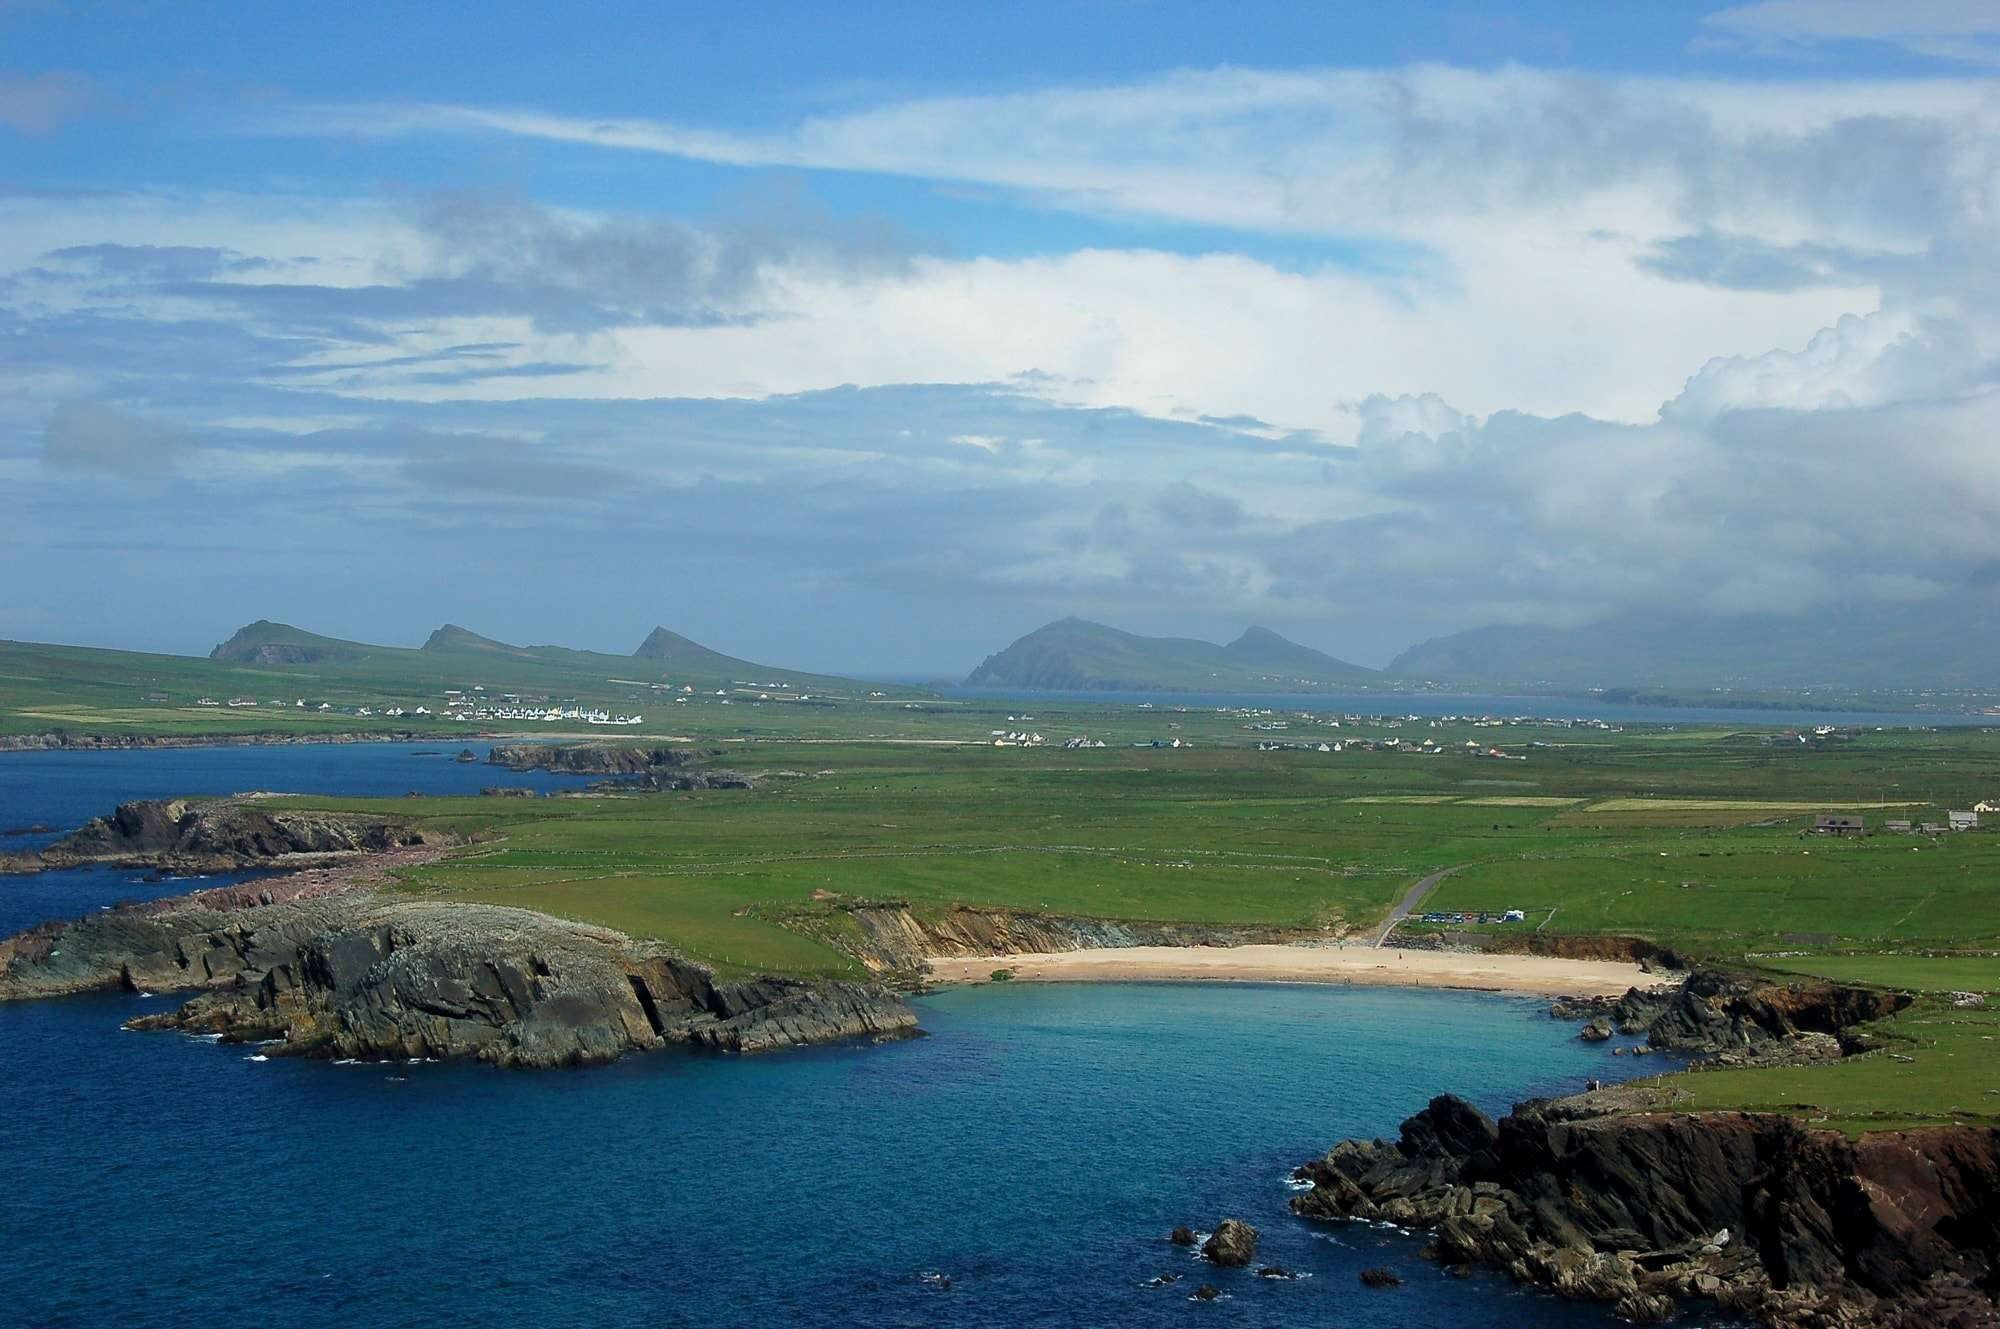 Dingle, the only town on the Dingle peninsula